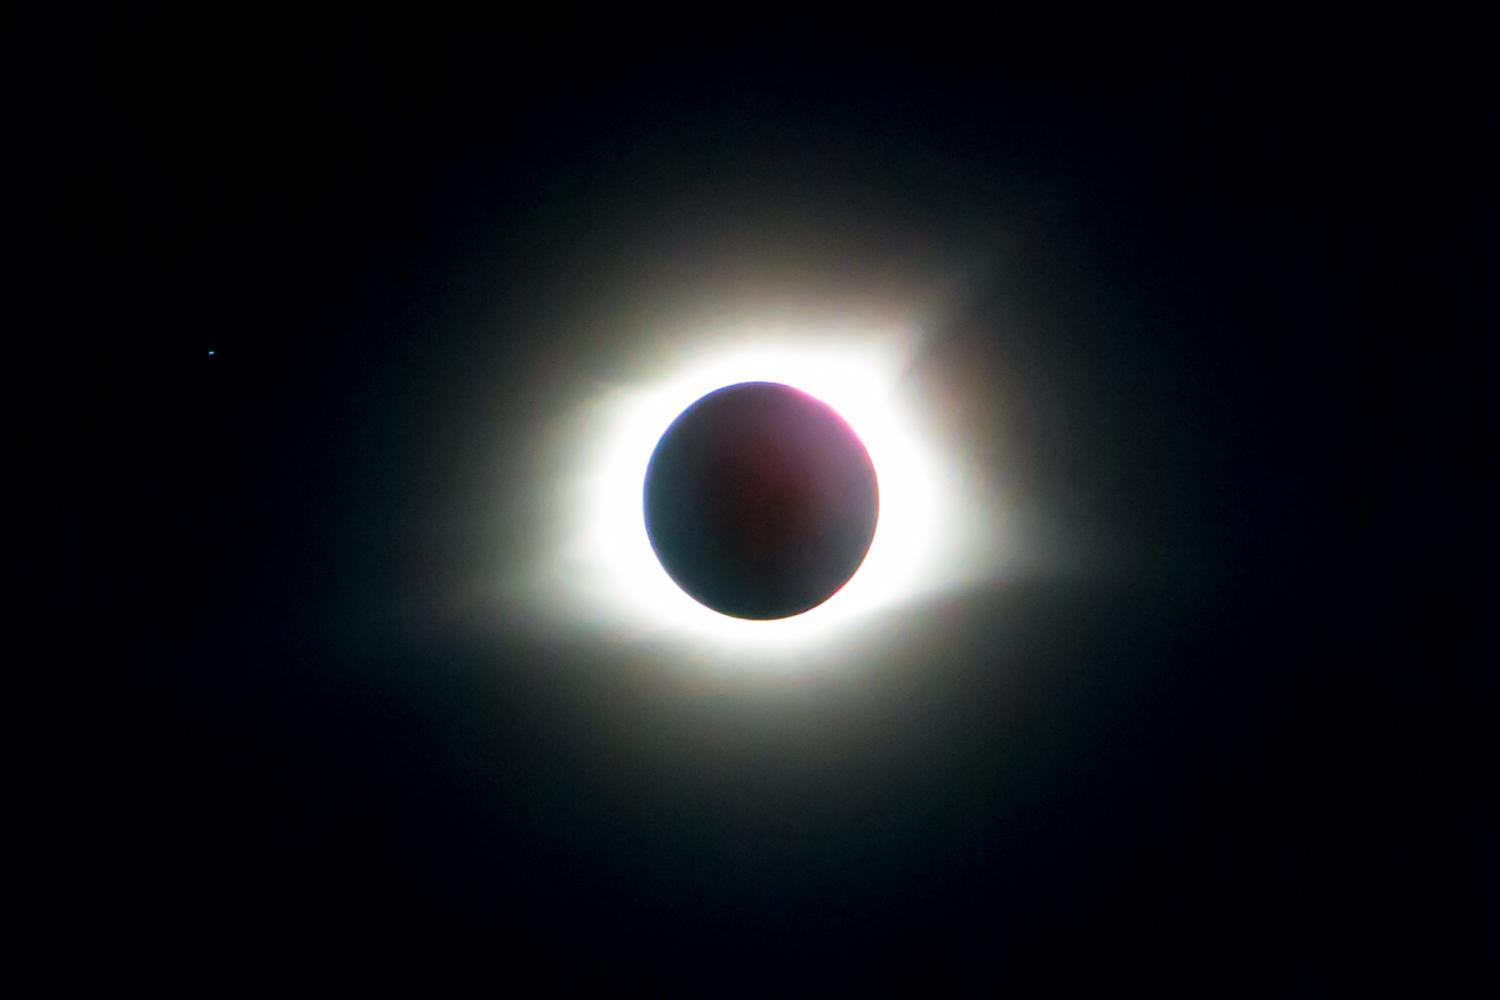 University astronomers have spent the last two year's preparing for Monday's total solar eclipse. While they will be traveling to southern Illinois to witness the most intense changes in the path of totality, 93 percent of the sun in Champaign-Urbana will be eclipsed. The photographed solar eclipse was captured in southern Illinois on Monday, Aug. 21.